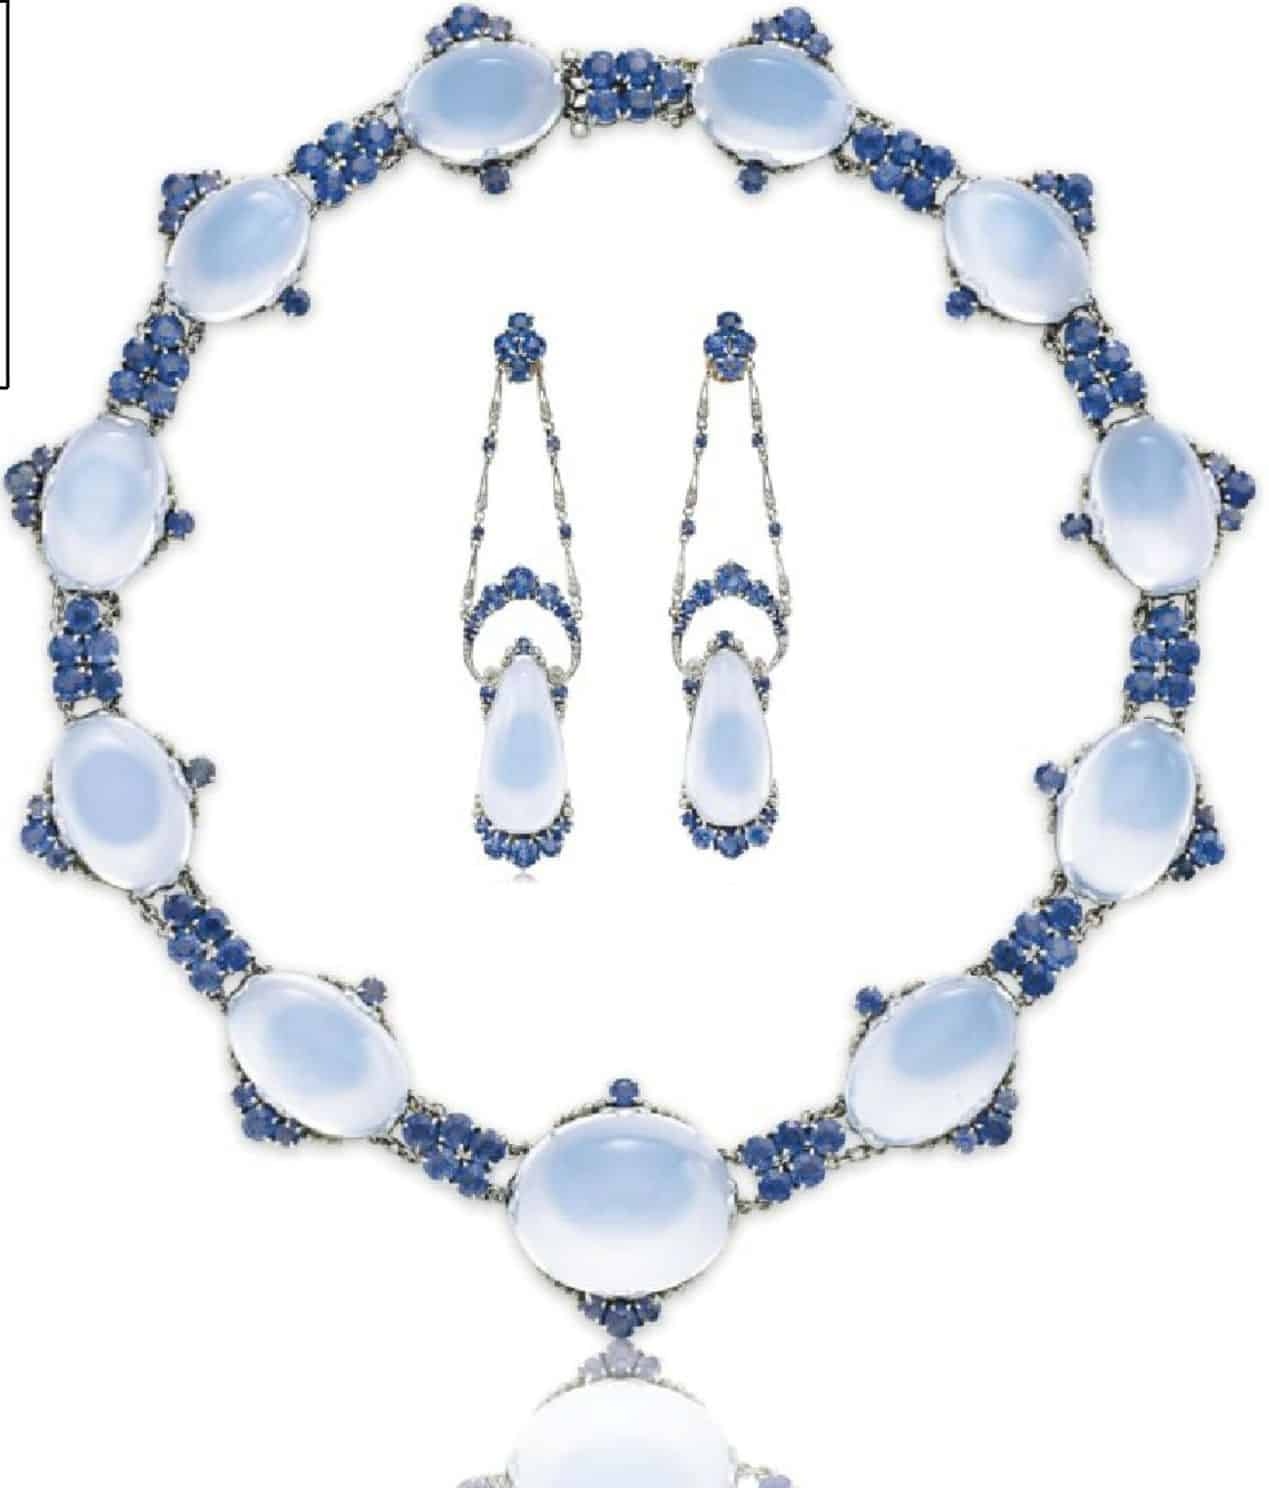 LOT 134 - AN IMPRESSIVE SET OF MOONSTONE AND SAPPHIRE JEWELRY, BY LOUIS COMFORT TIFFANY, TIFFANY & CO